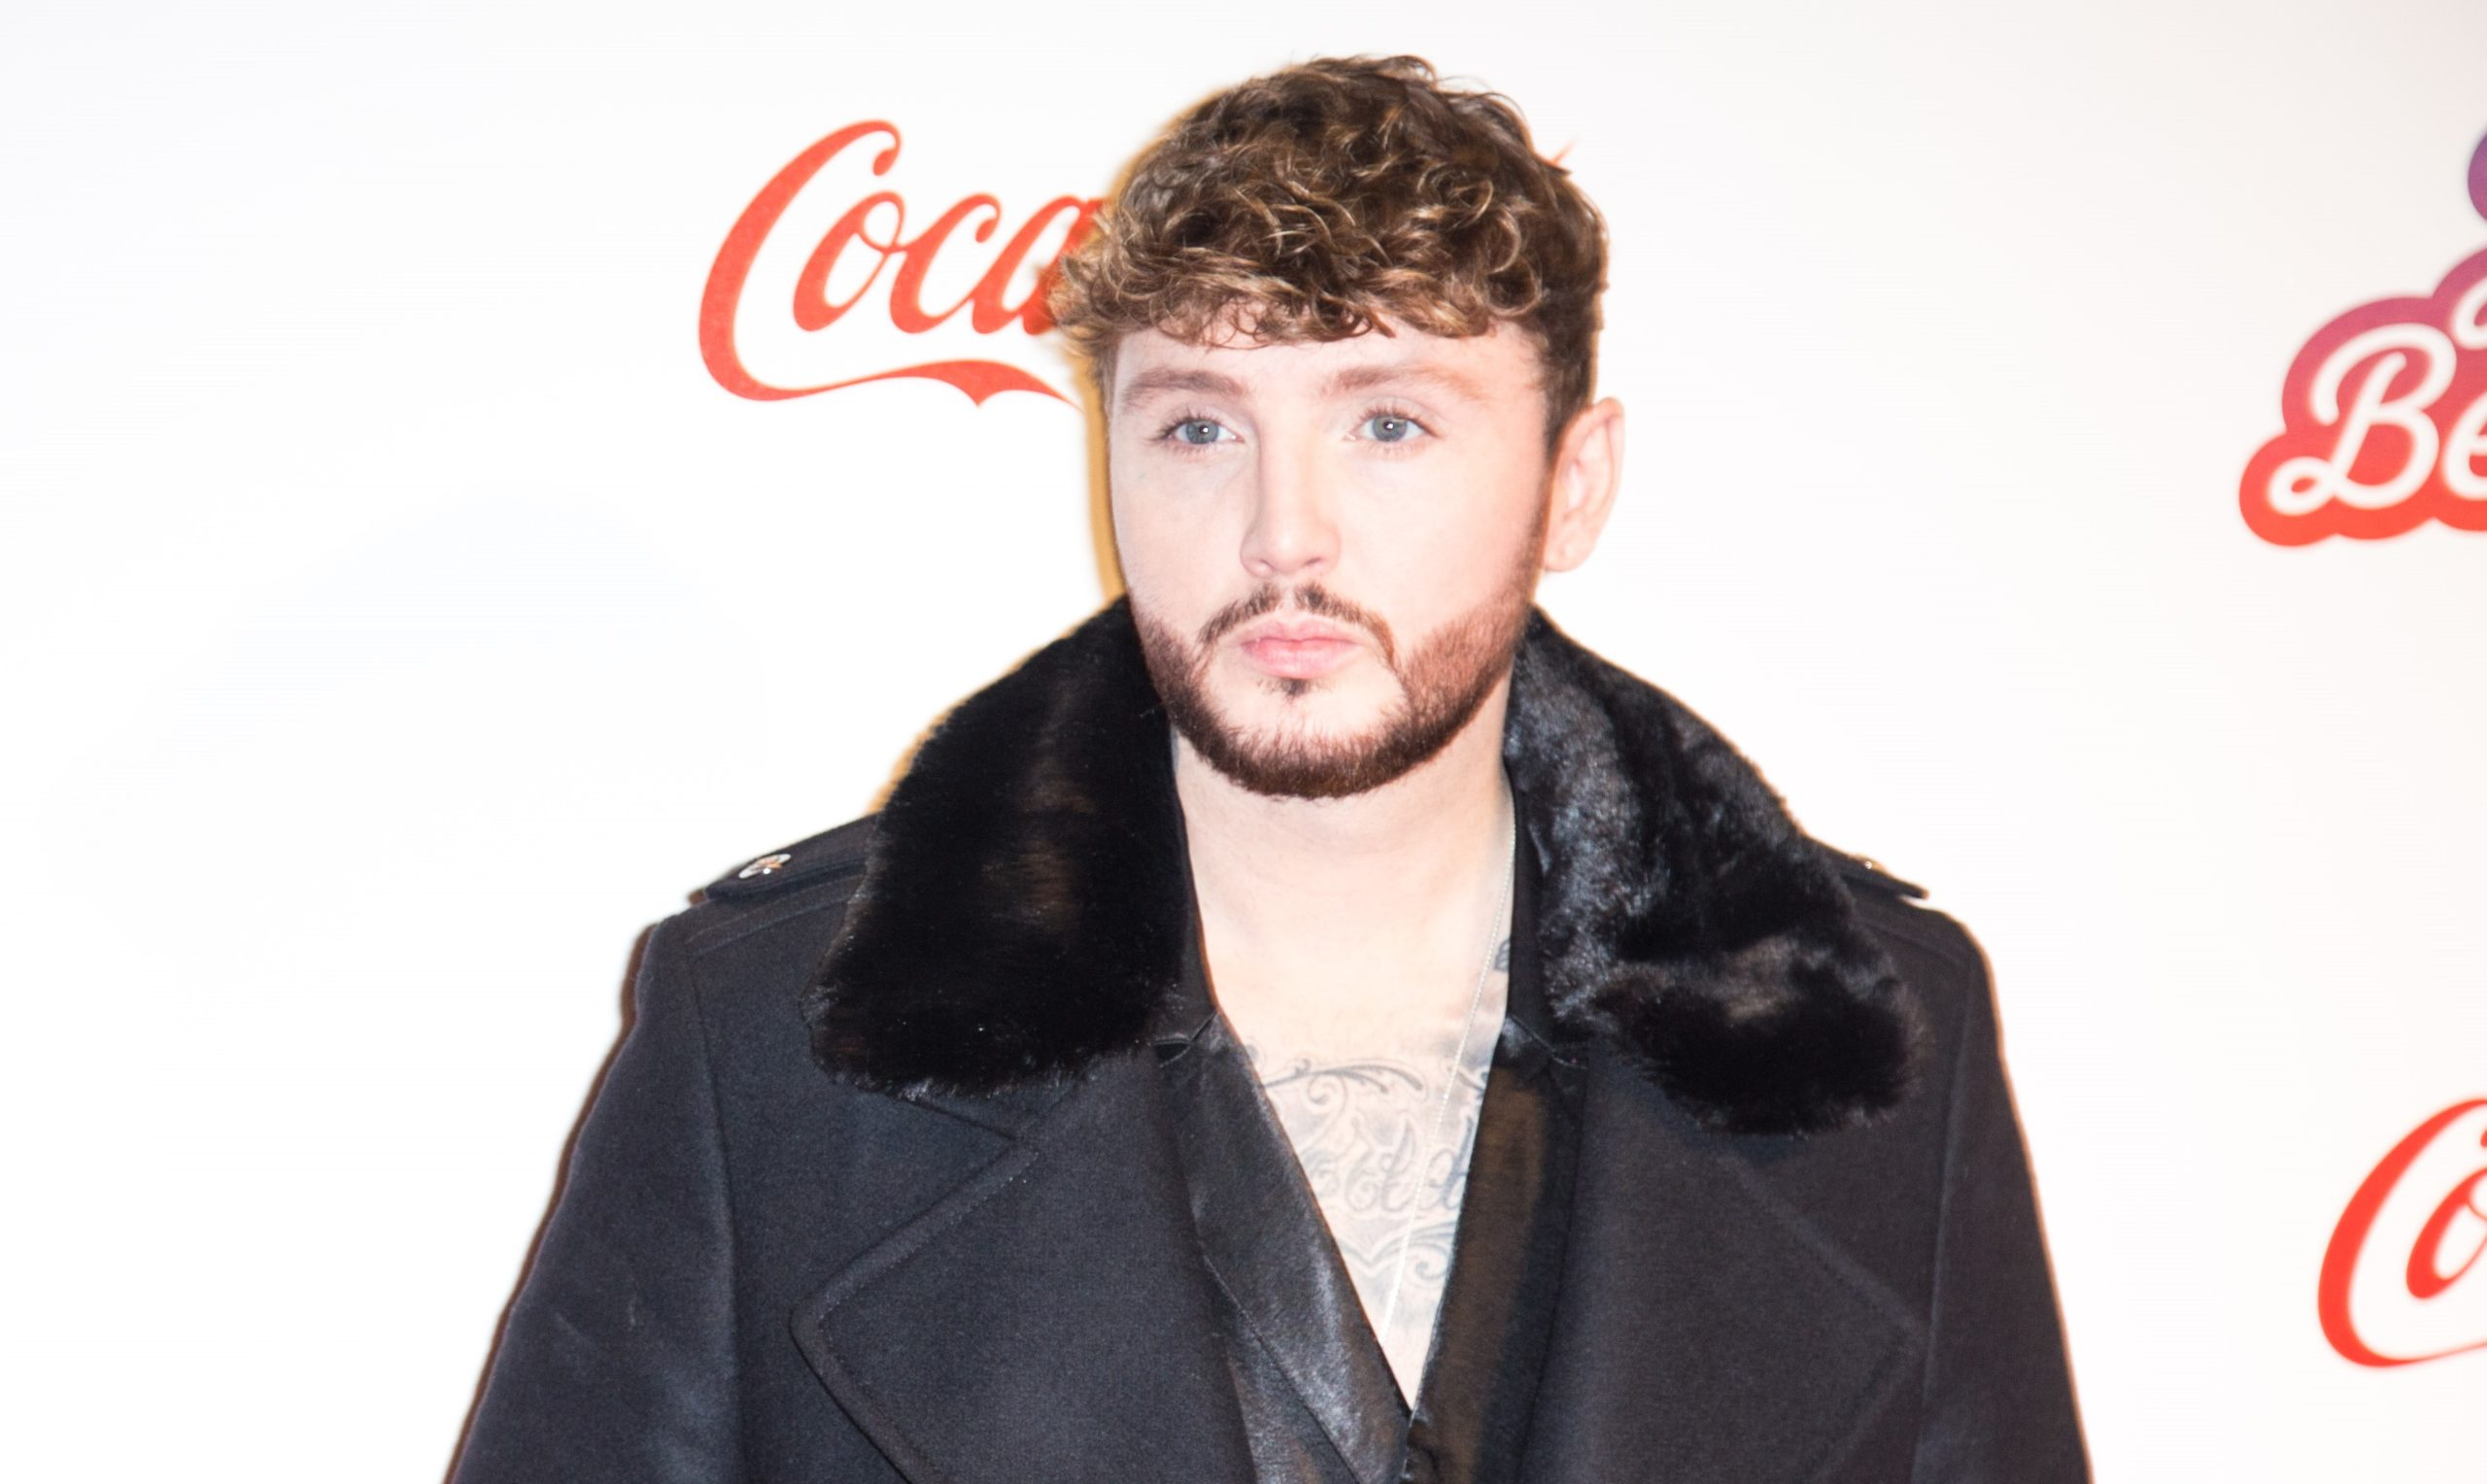 James Arthur 'balloons' to 17 stone after lockdown bingeing